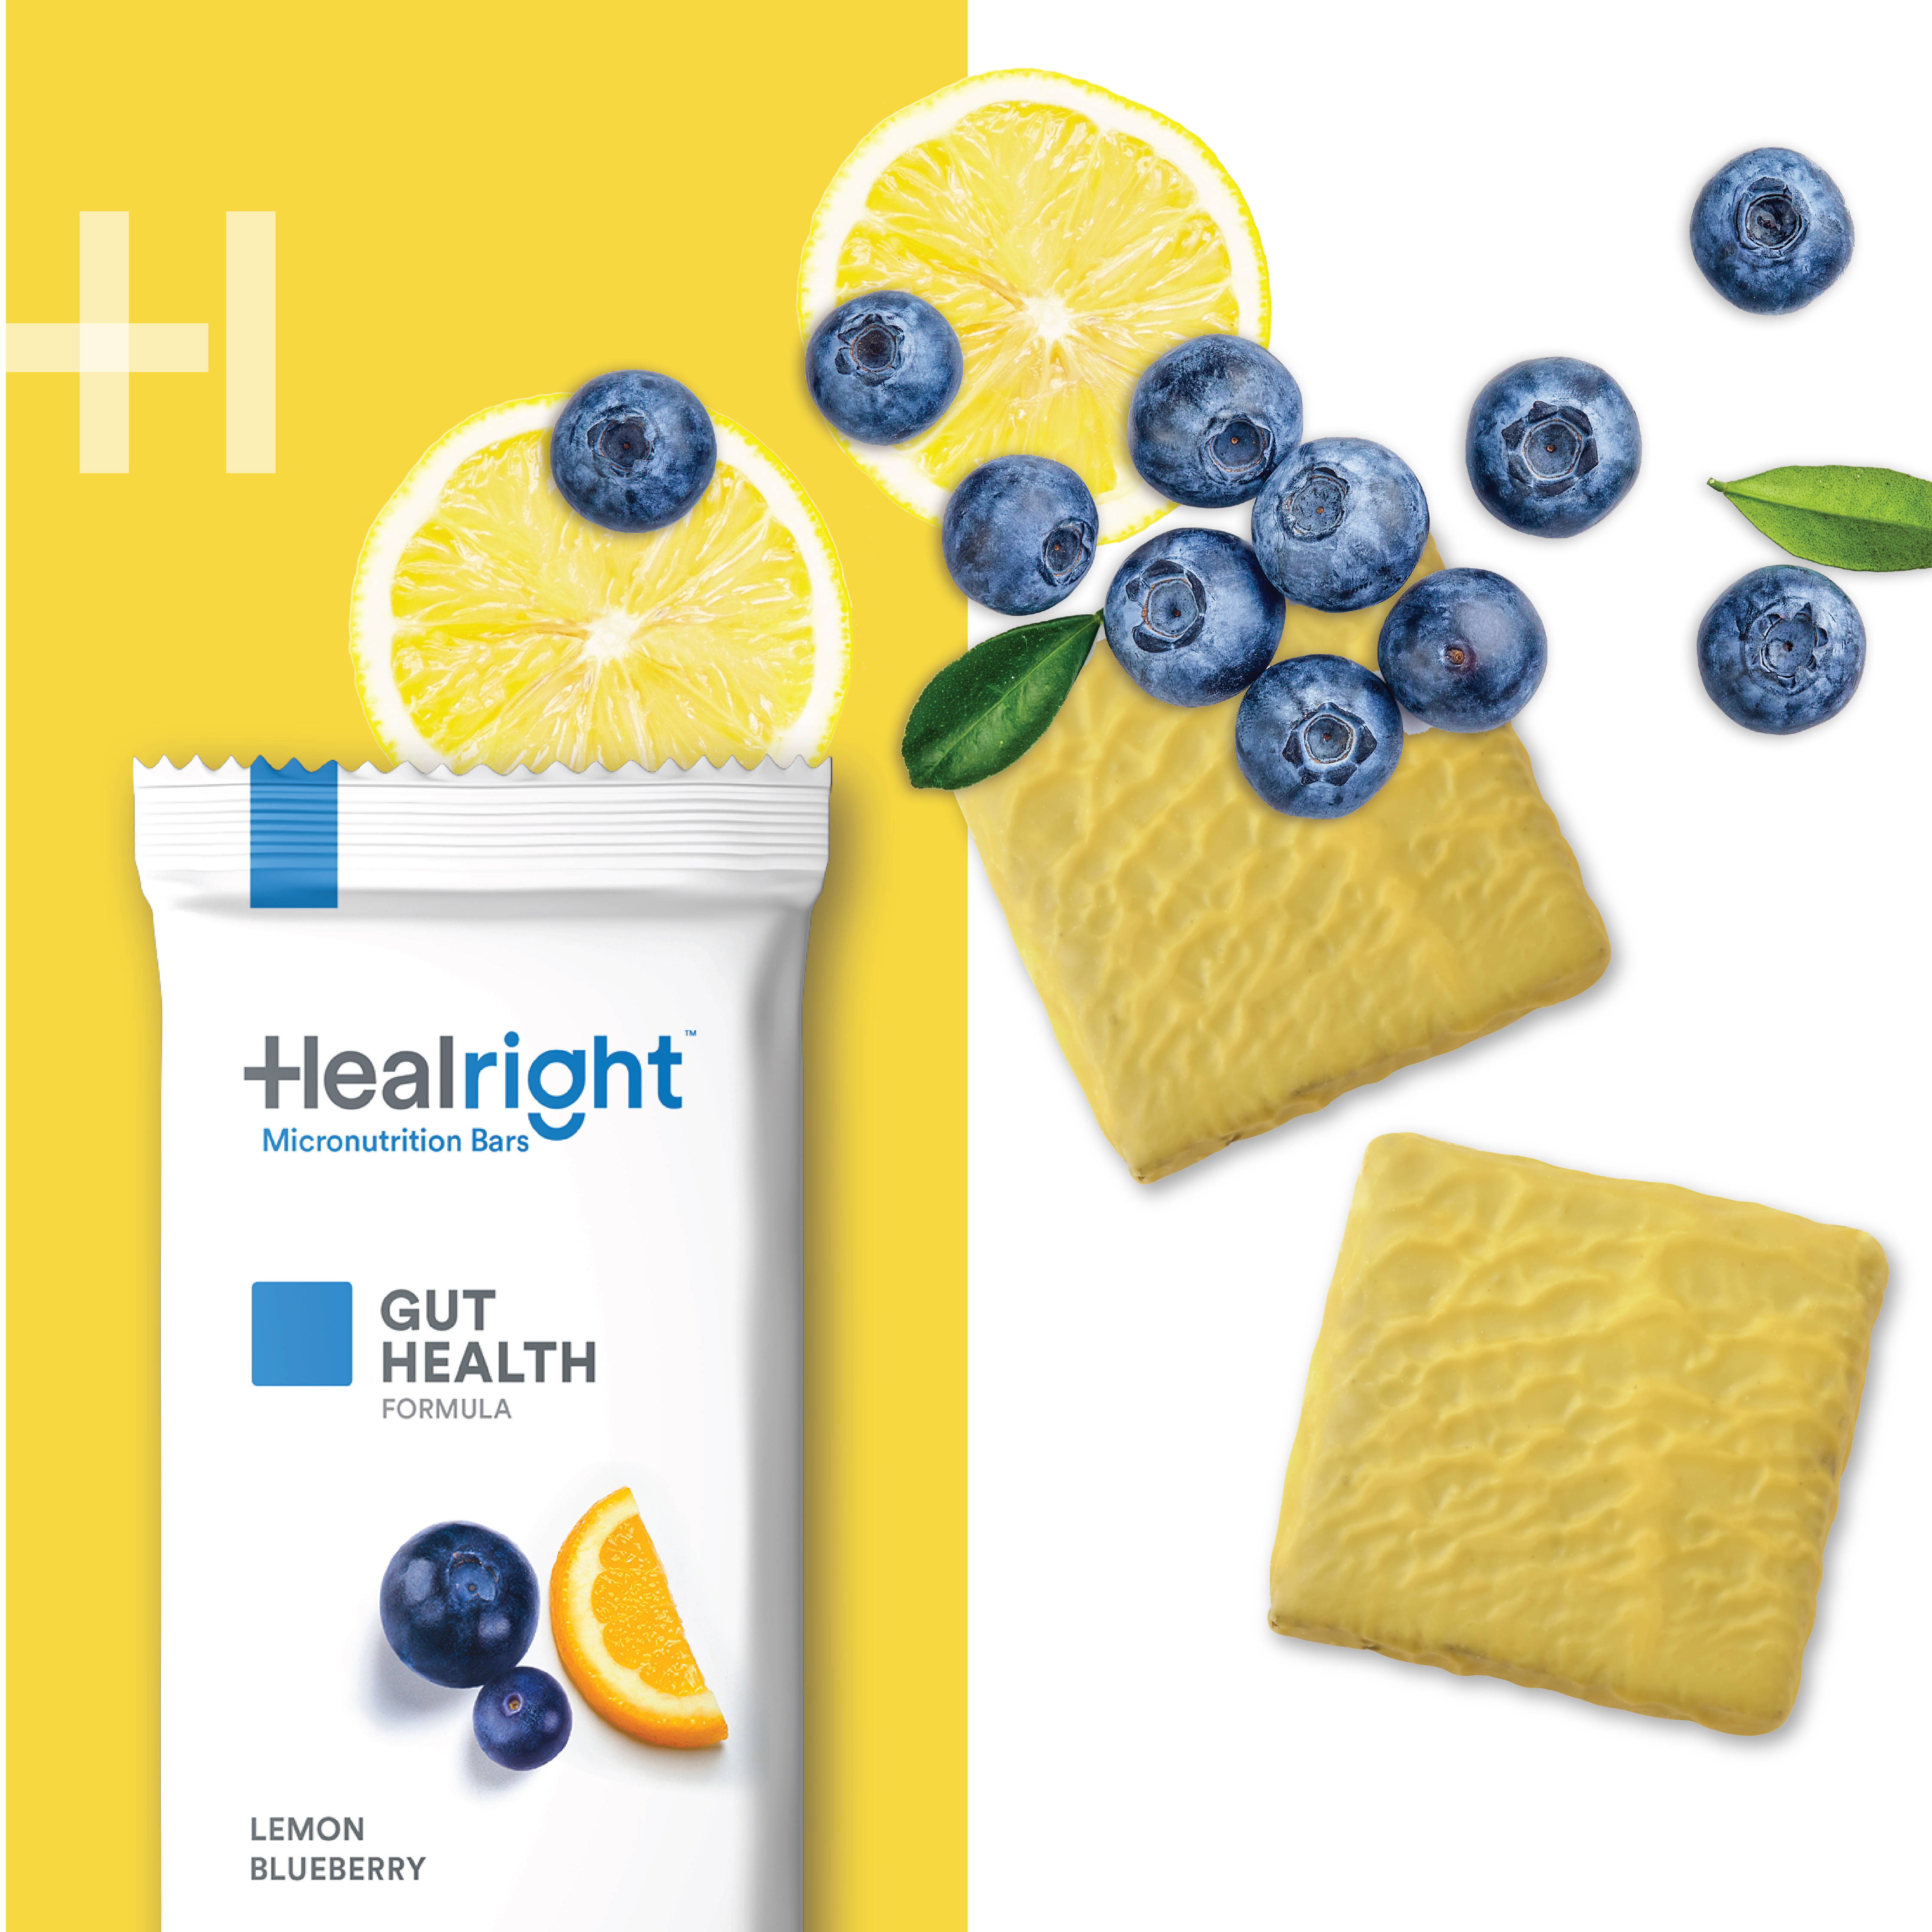 Healright Try with Lemon Blueberry flavor